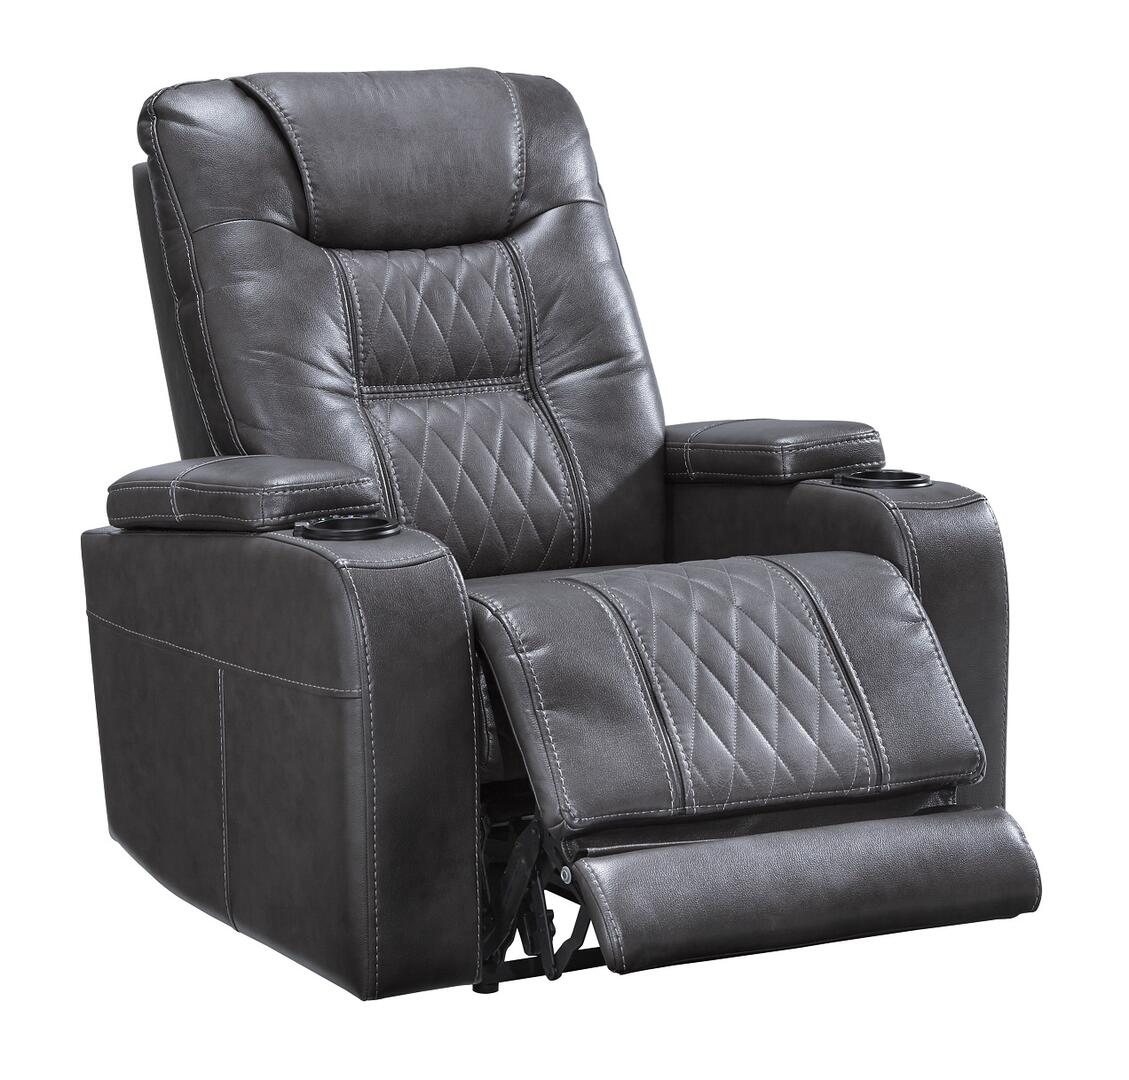 charlottesville on recliner sale powell and july virginia fredericksburg room living richmond now browse recliners going